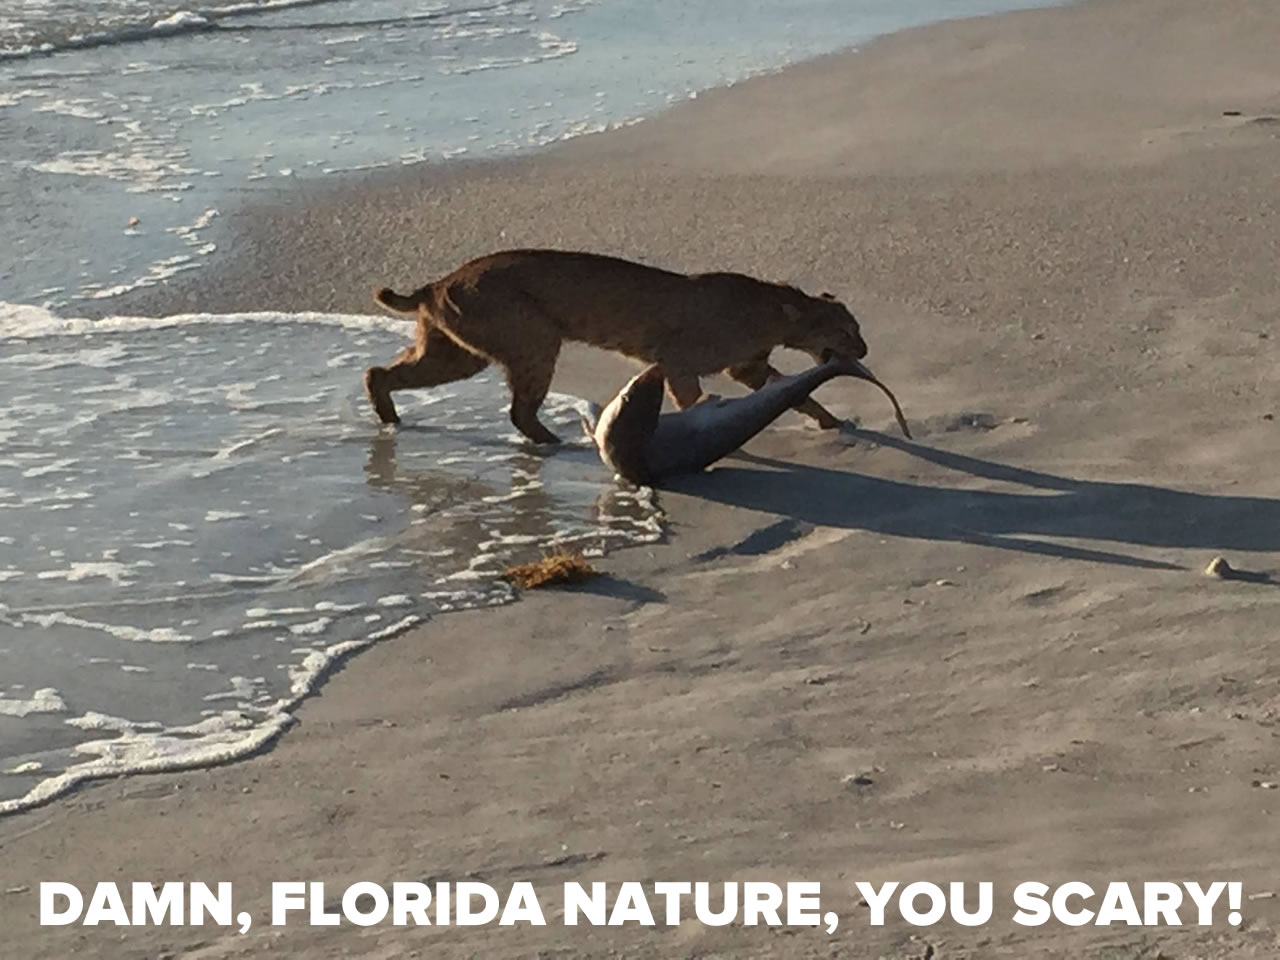 Headline: Damn, Florida nature, you scary! / Photo: Bobcat dragging a shark along a beach